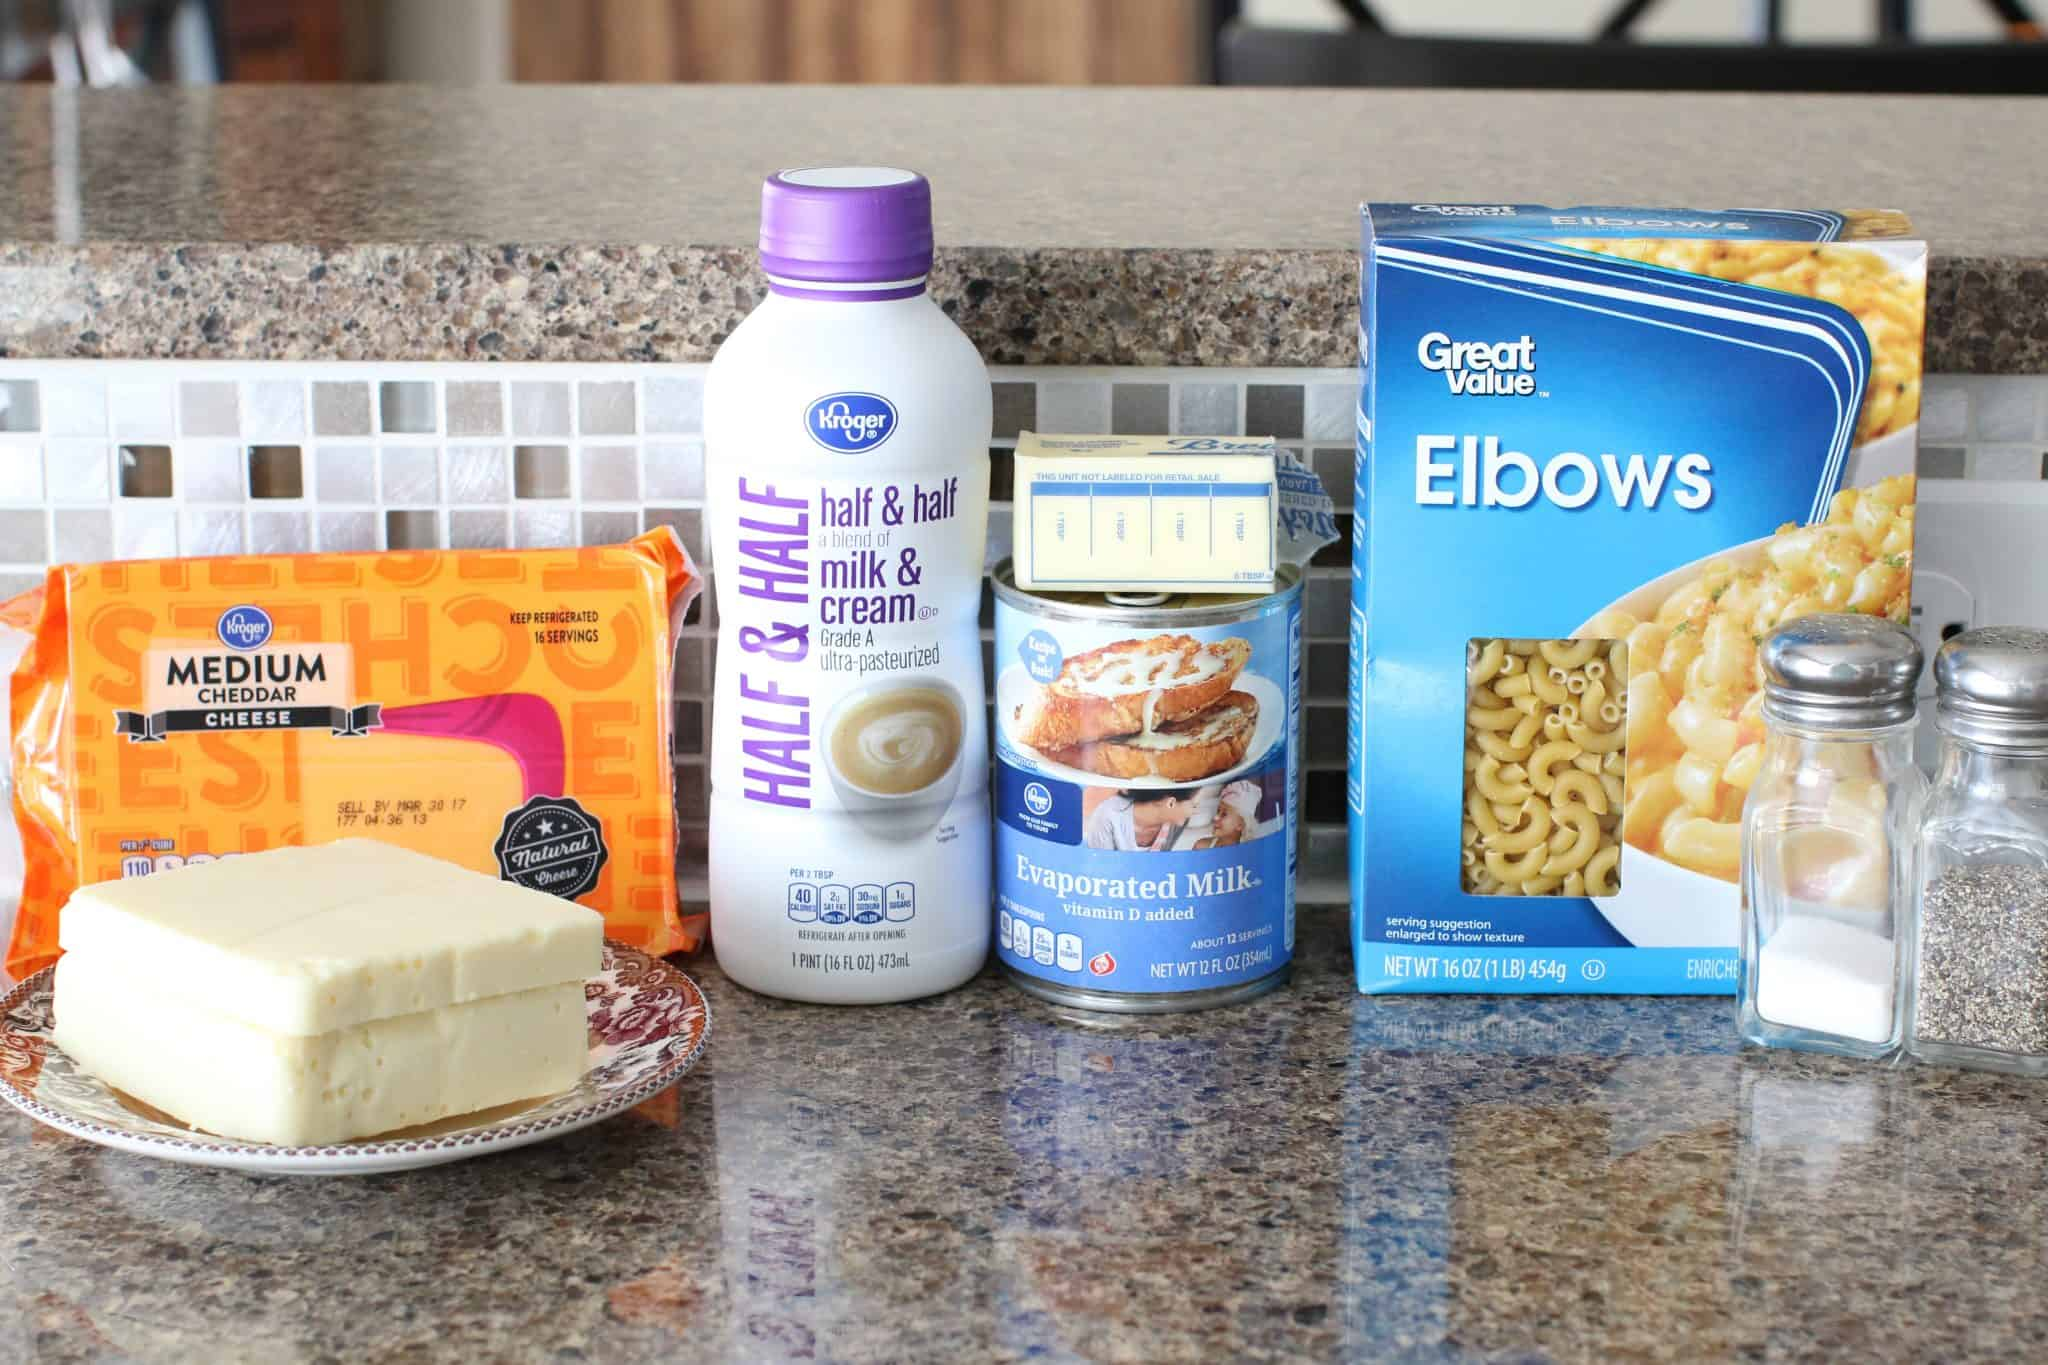 ingredients needed to make slow cooker macaroni and cheese: elbow macaroni, salted butter, evaporated milk, half & half, shredded cheddar cheese, white American cheese, salt and pepper.